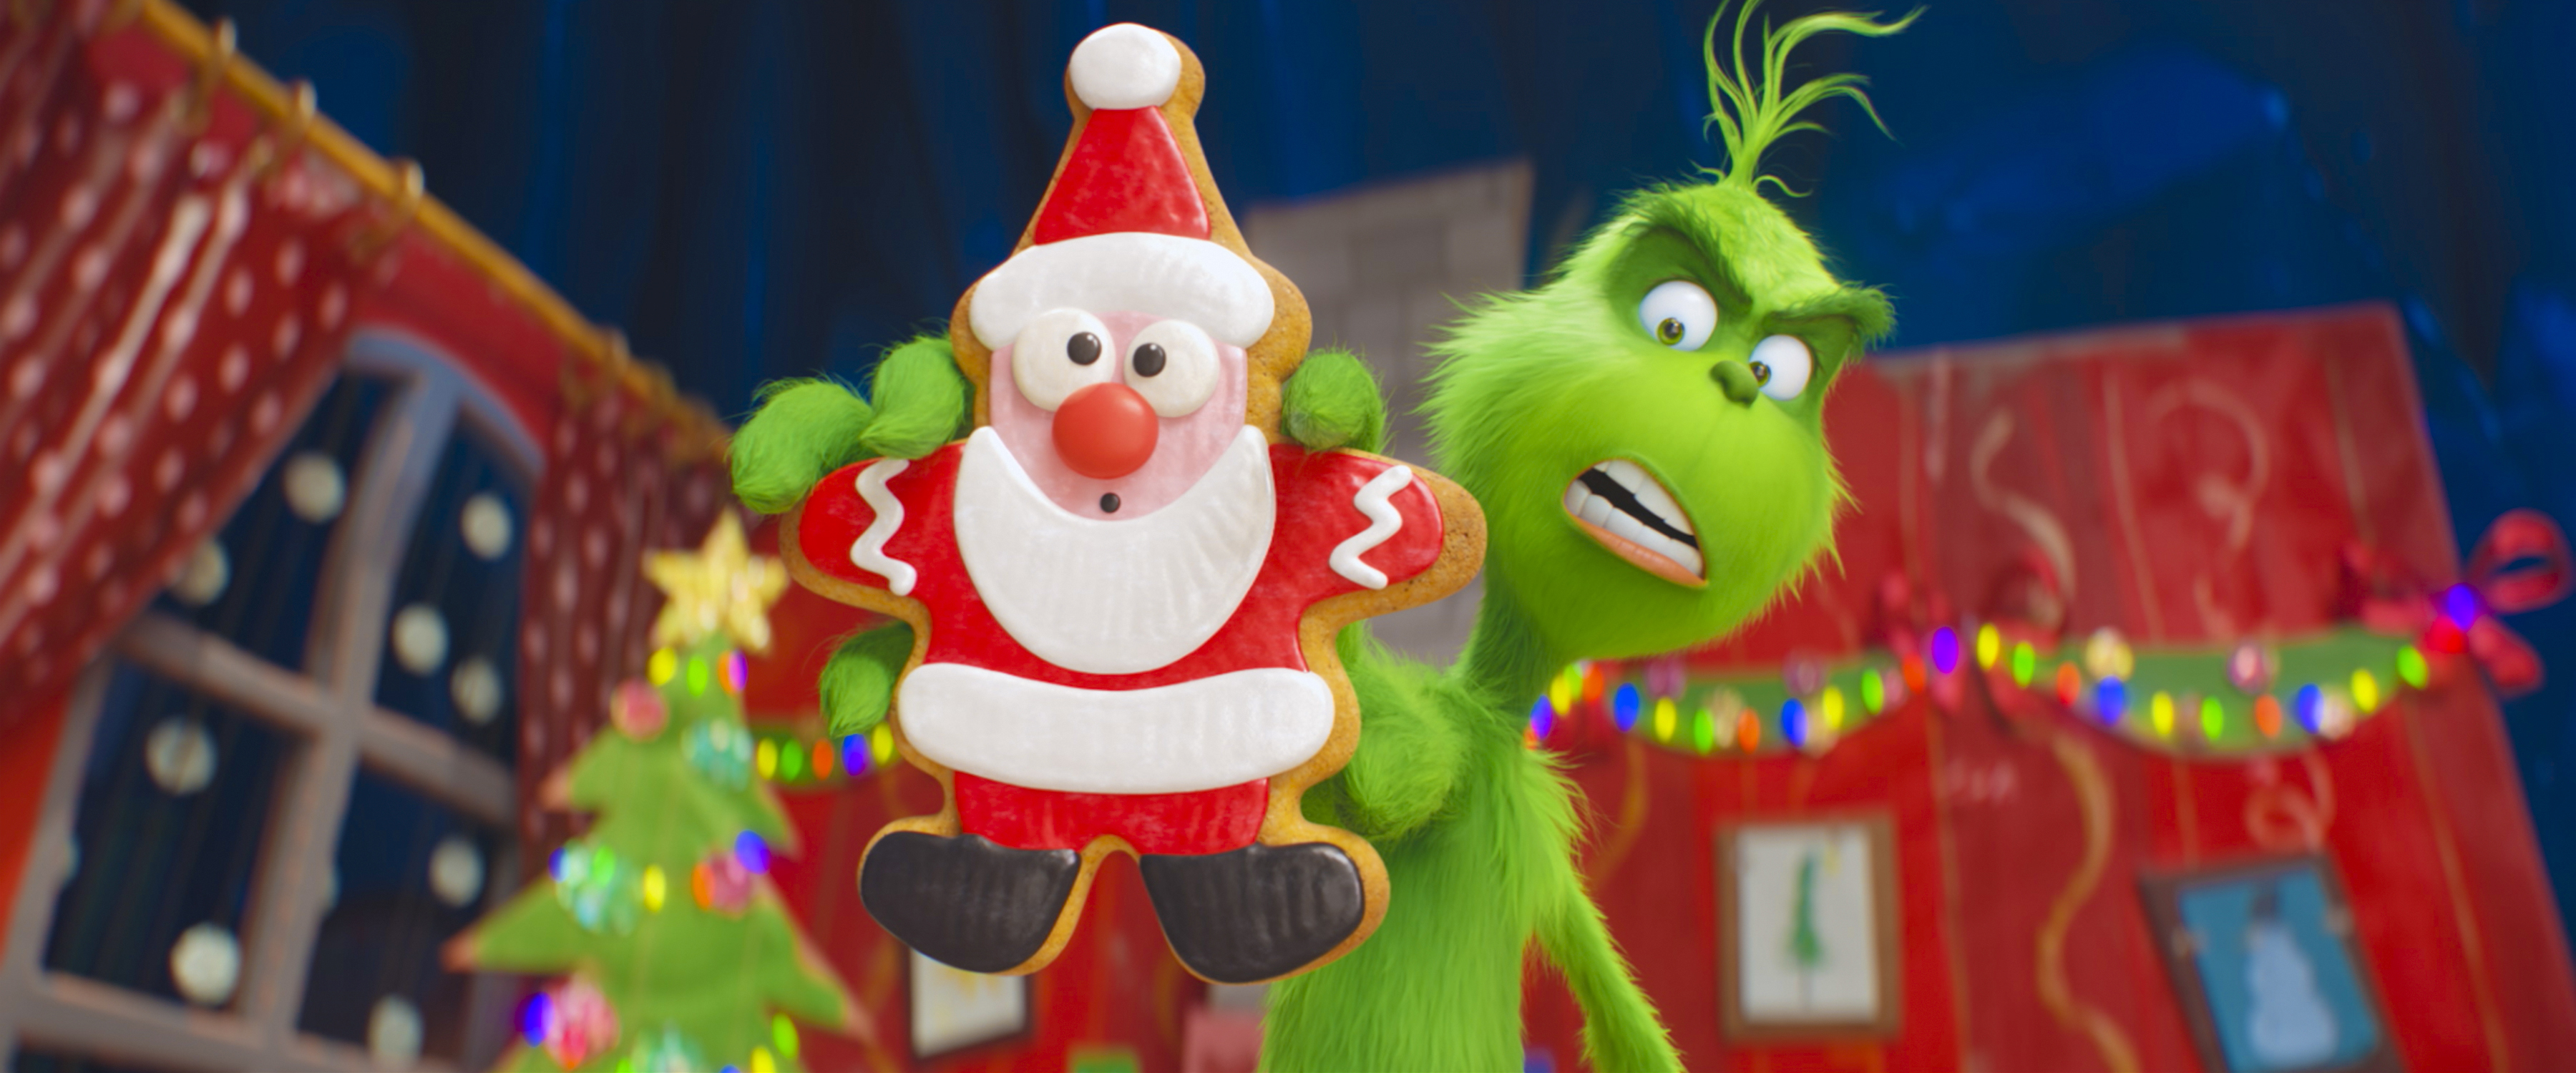 How The Grinch Stole Christmas Characters Animated.Do We Need Another Grinch Movie Some Reviews Say Yes But